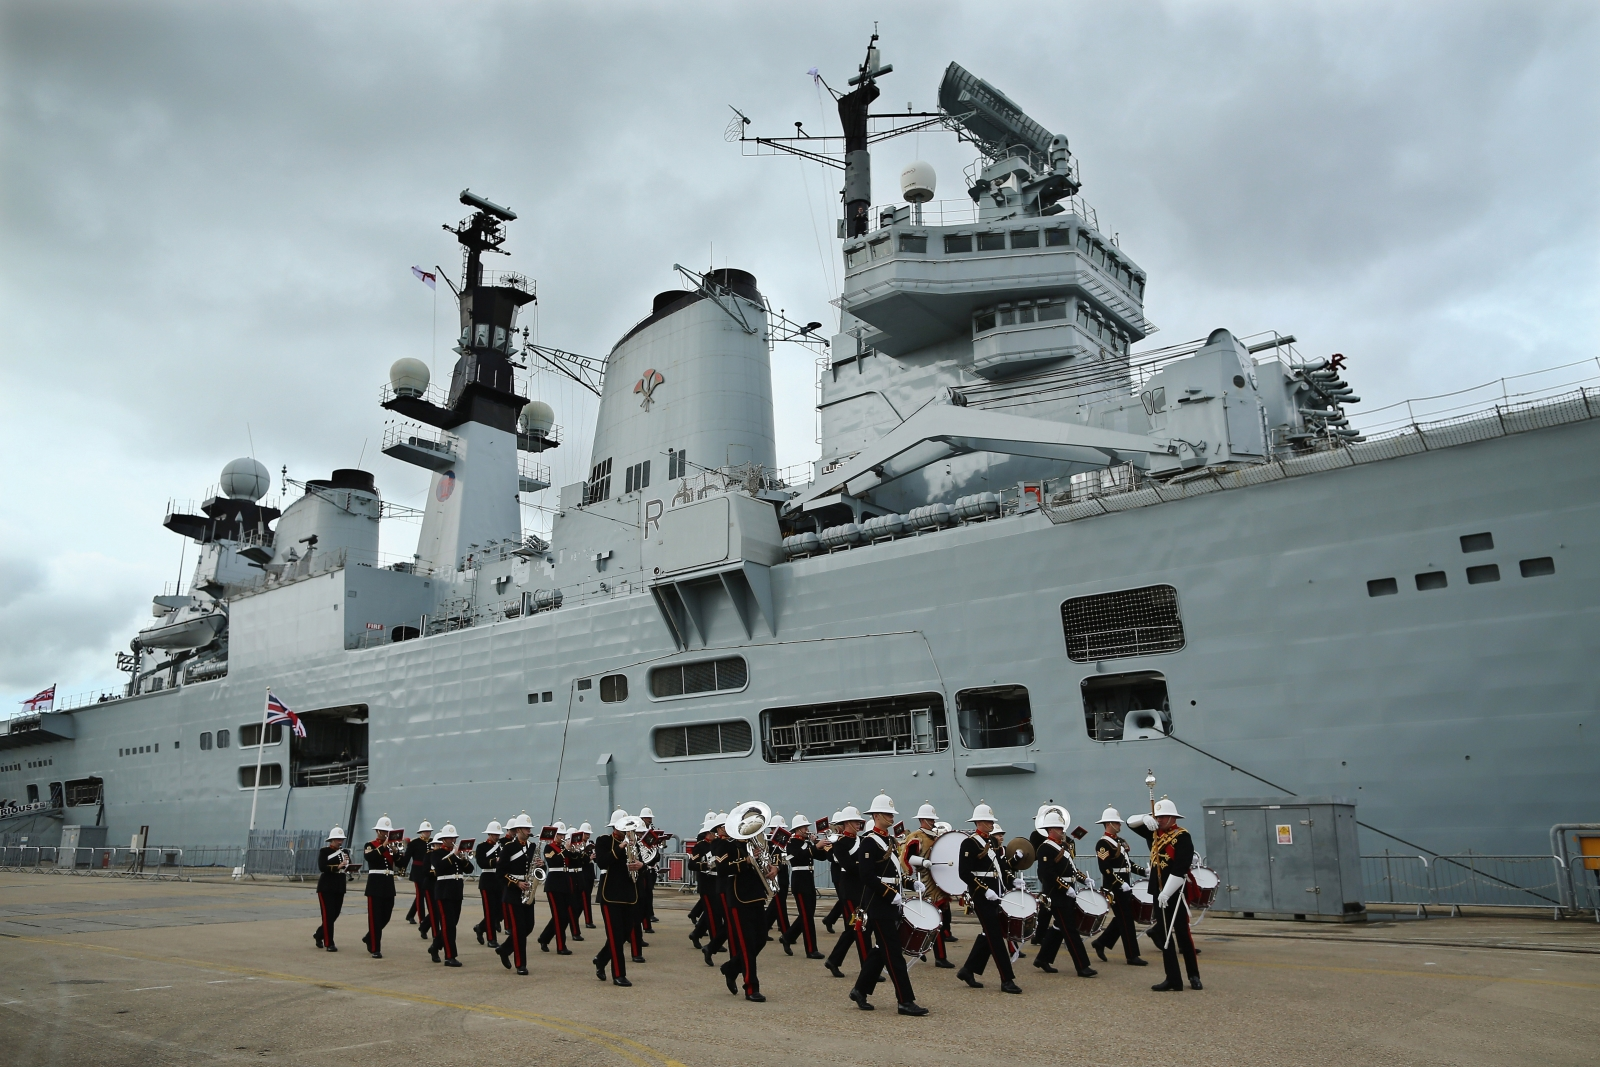 HMS Illustrious during her decommissioning ceremony